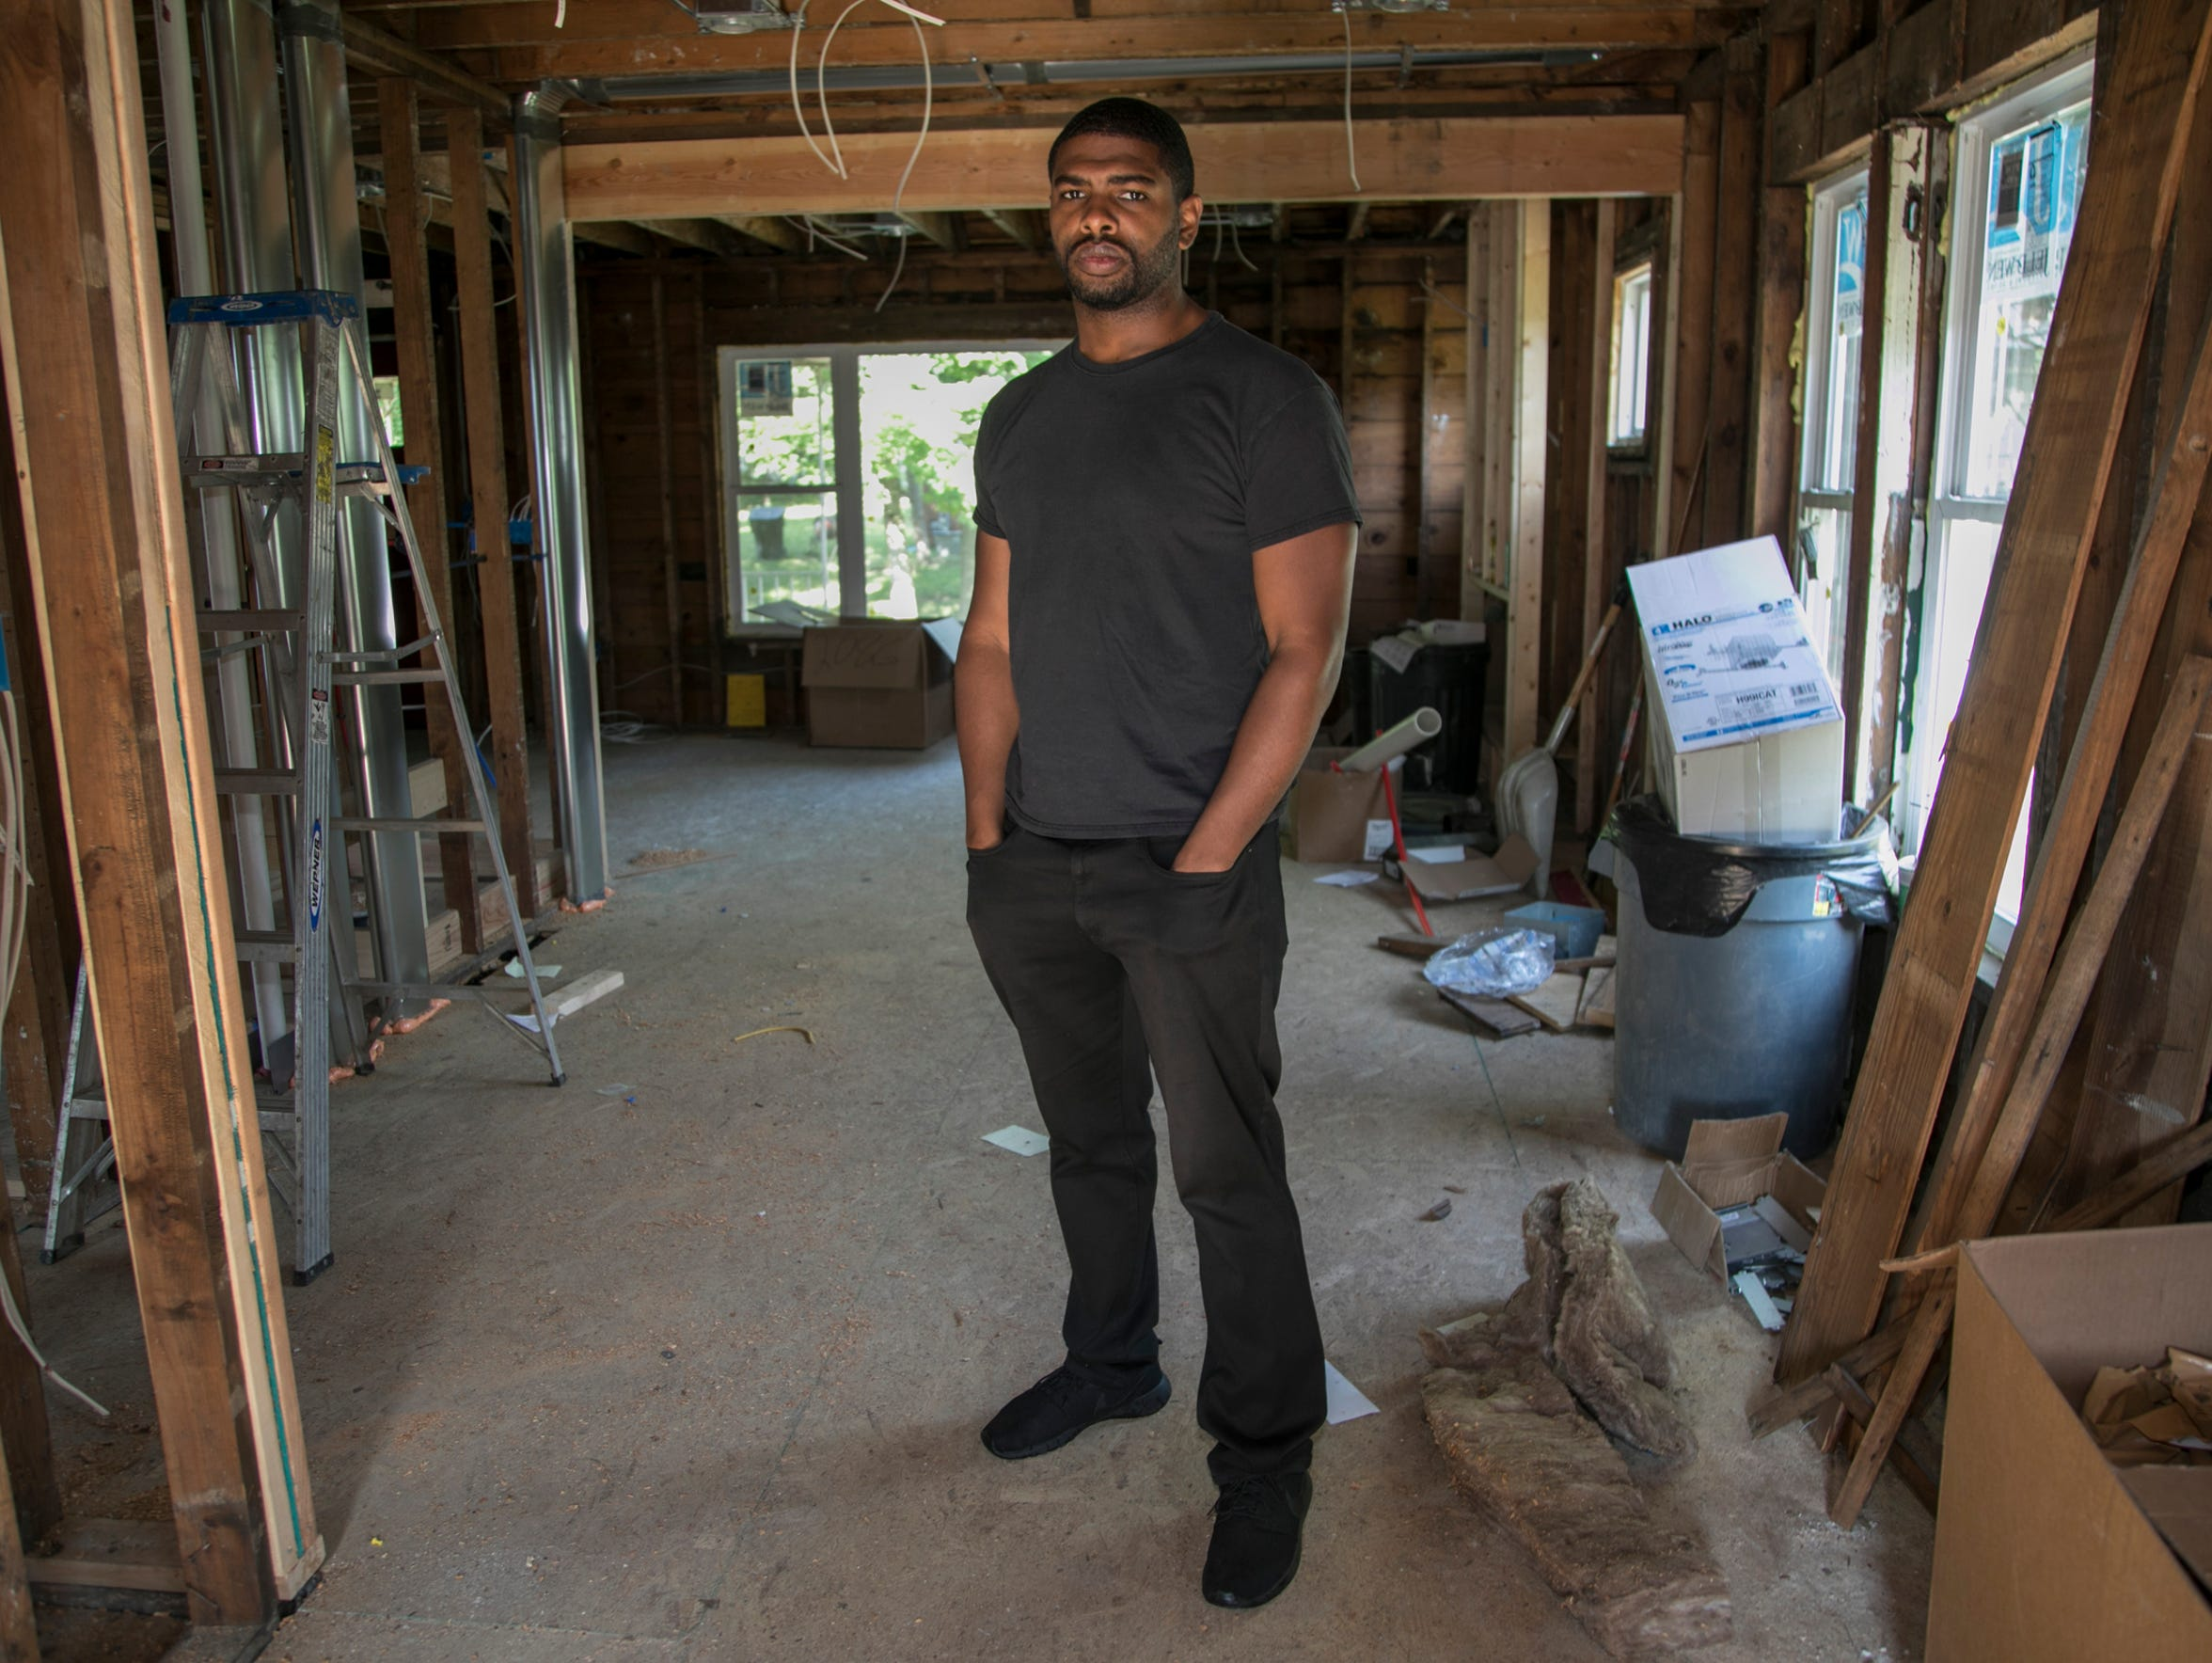 Gaston Nash, 35, on a June day stands in the Monica Street home he is currently rehabbing in the Fitzgerald neighborhood in Detroit. Nash, who lives next door and is president of the College Core Block Club, said the revitalization project is progressing slower than city leaders promised.